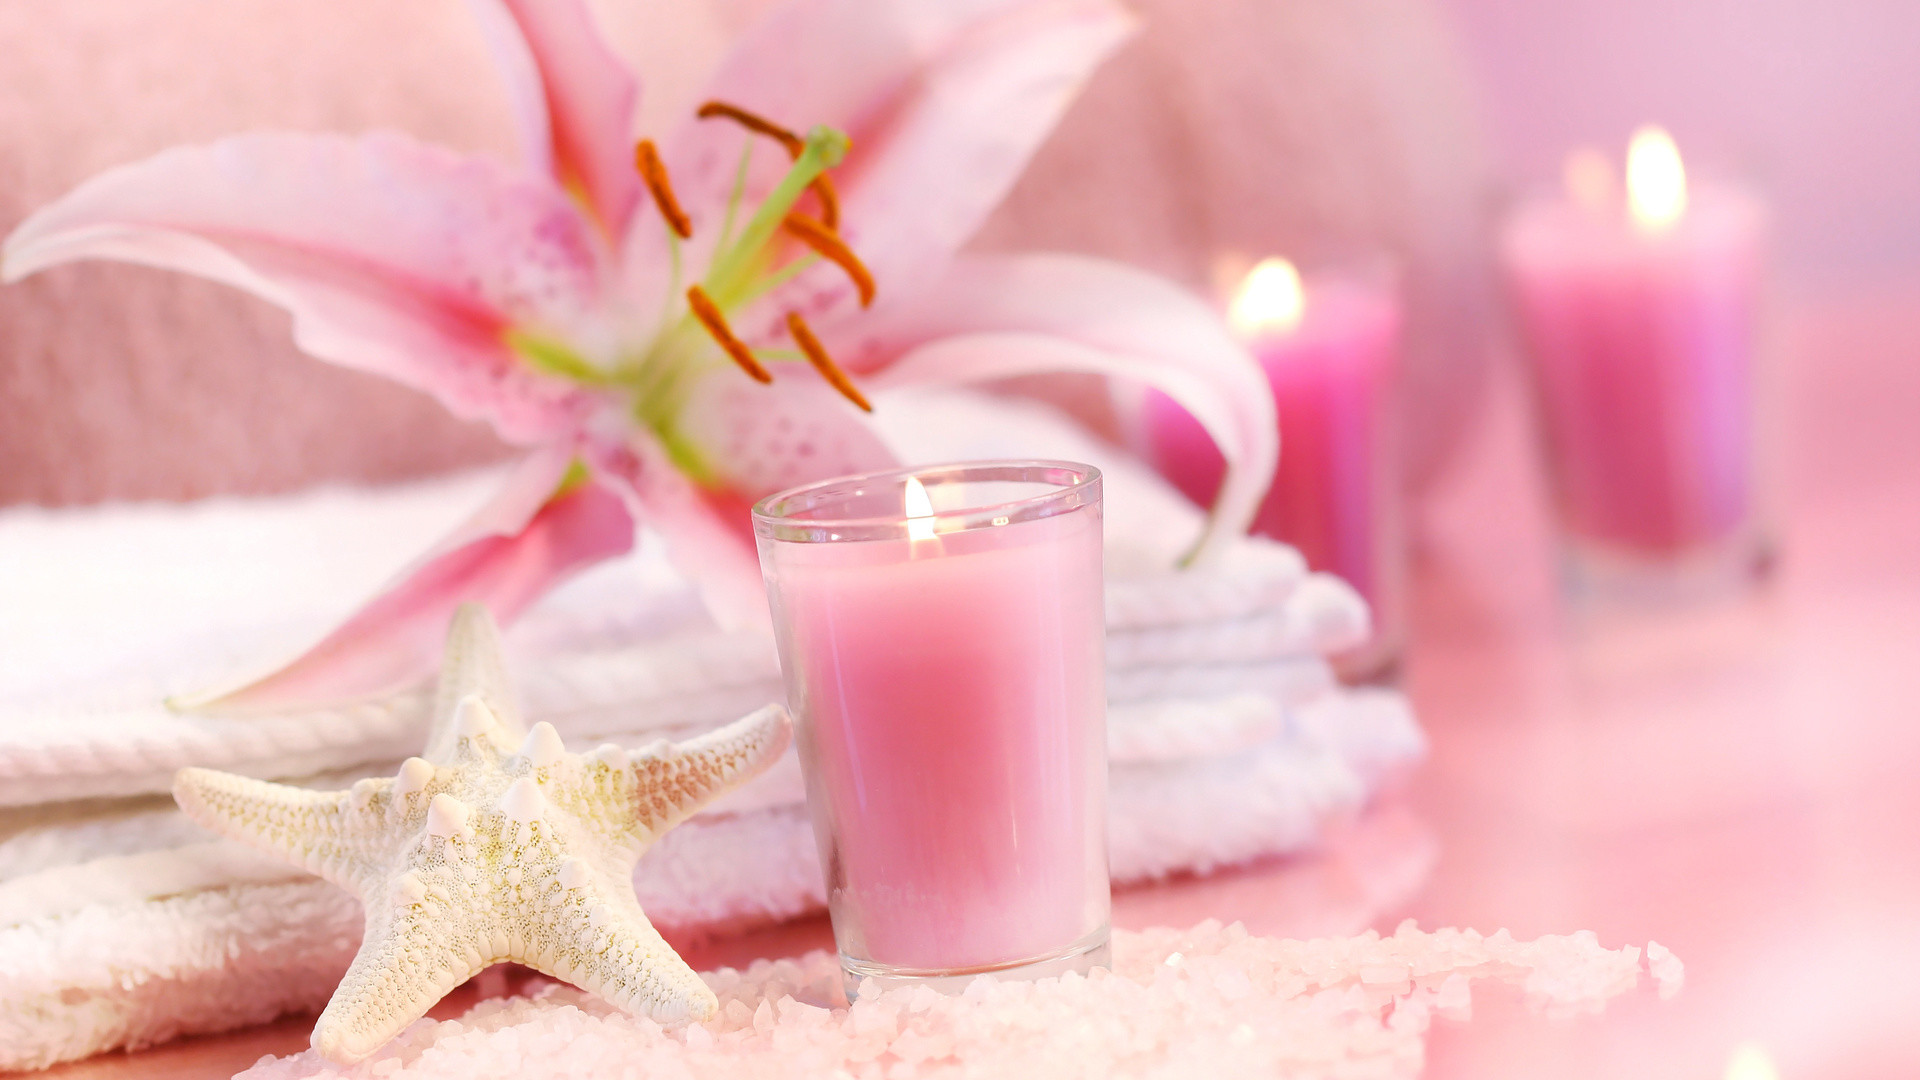 Res: 1920x1080, Spa, The Rest, Towel, Candle, Relax, Beauty Salon